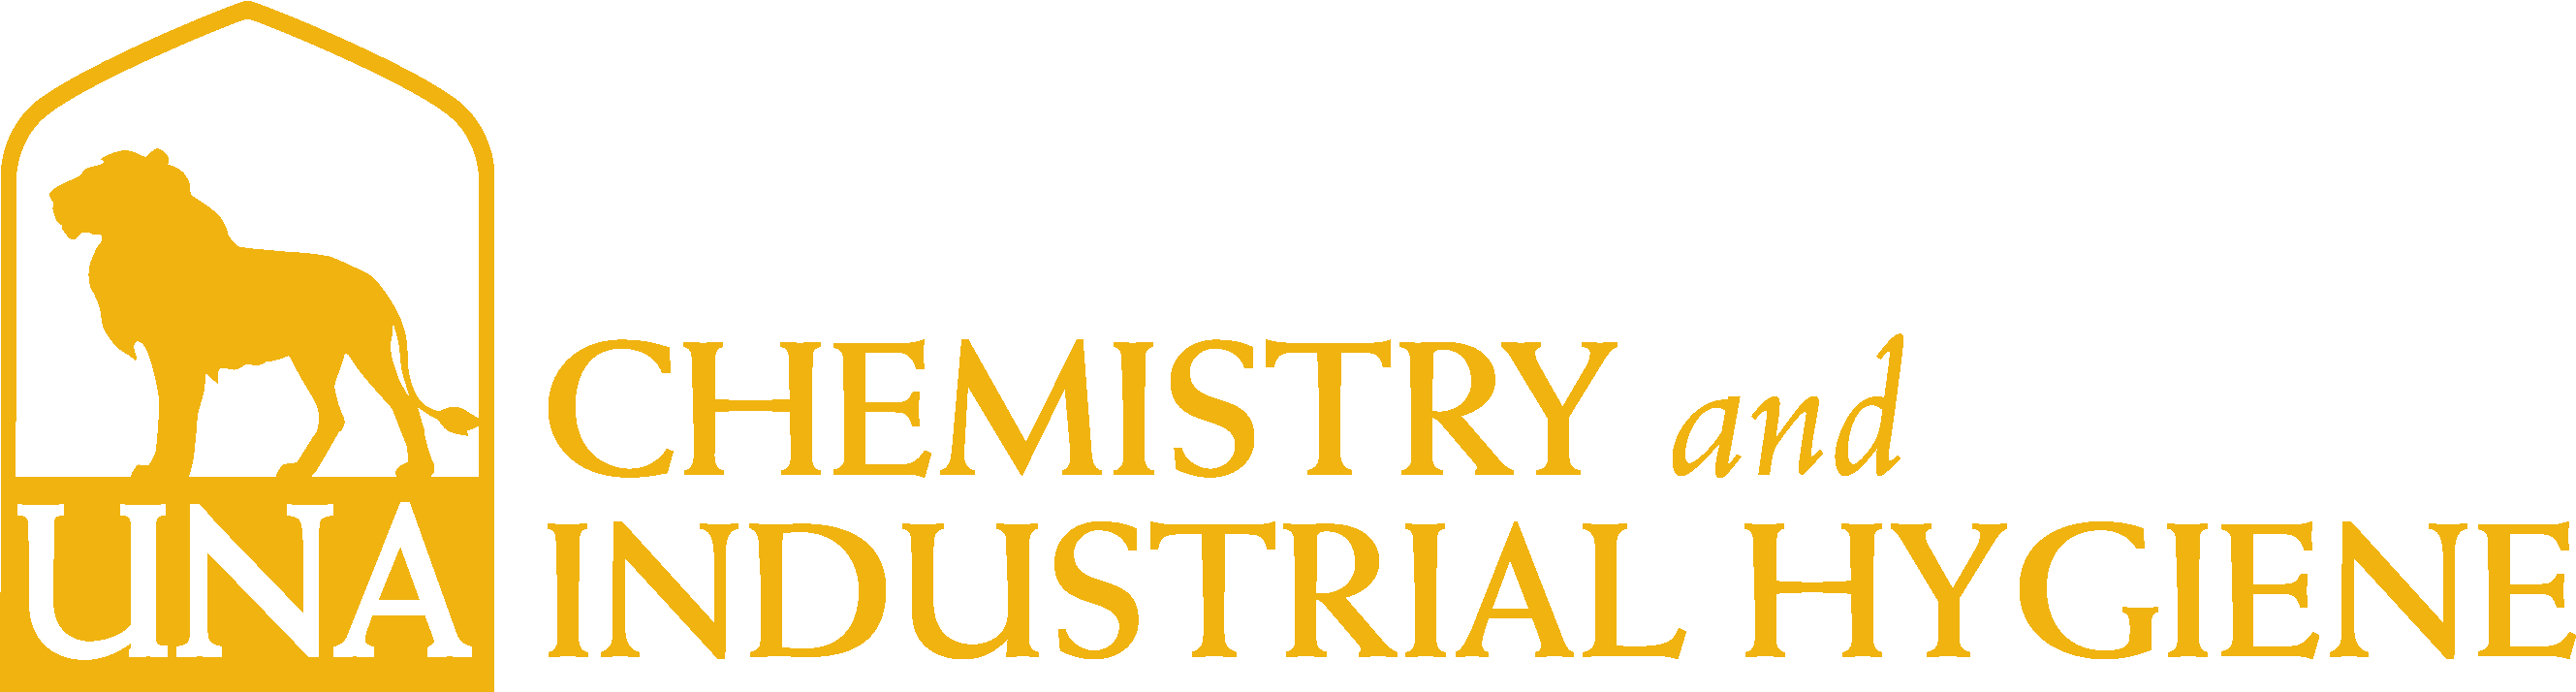 College of Arts and Sciences - Chemistry Logo - Gold - Version 3